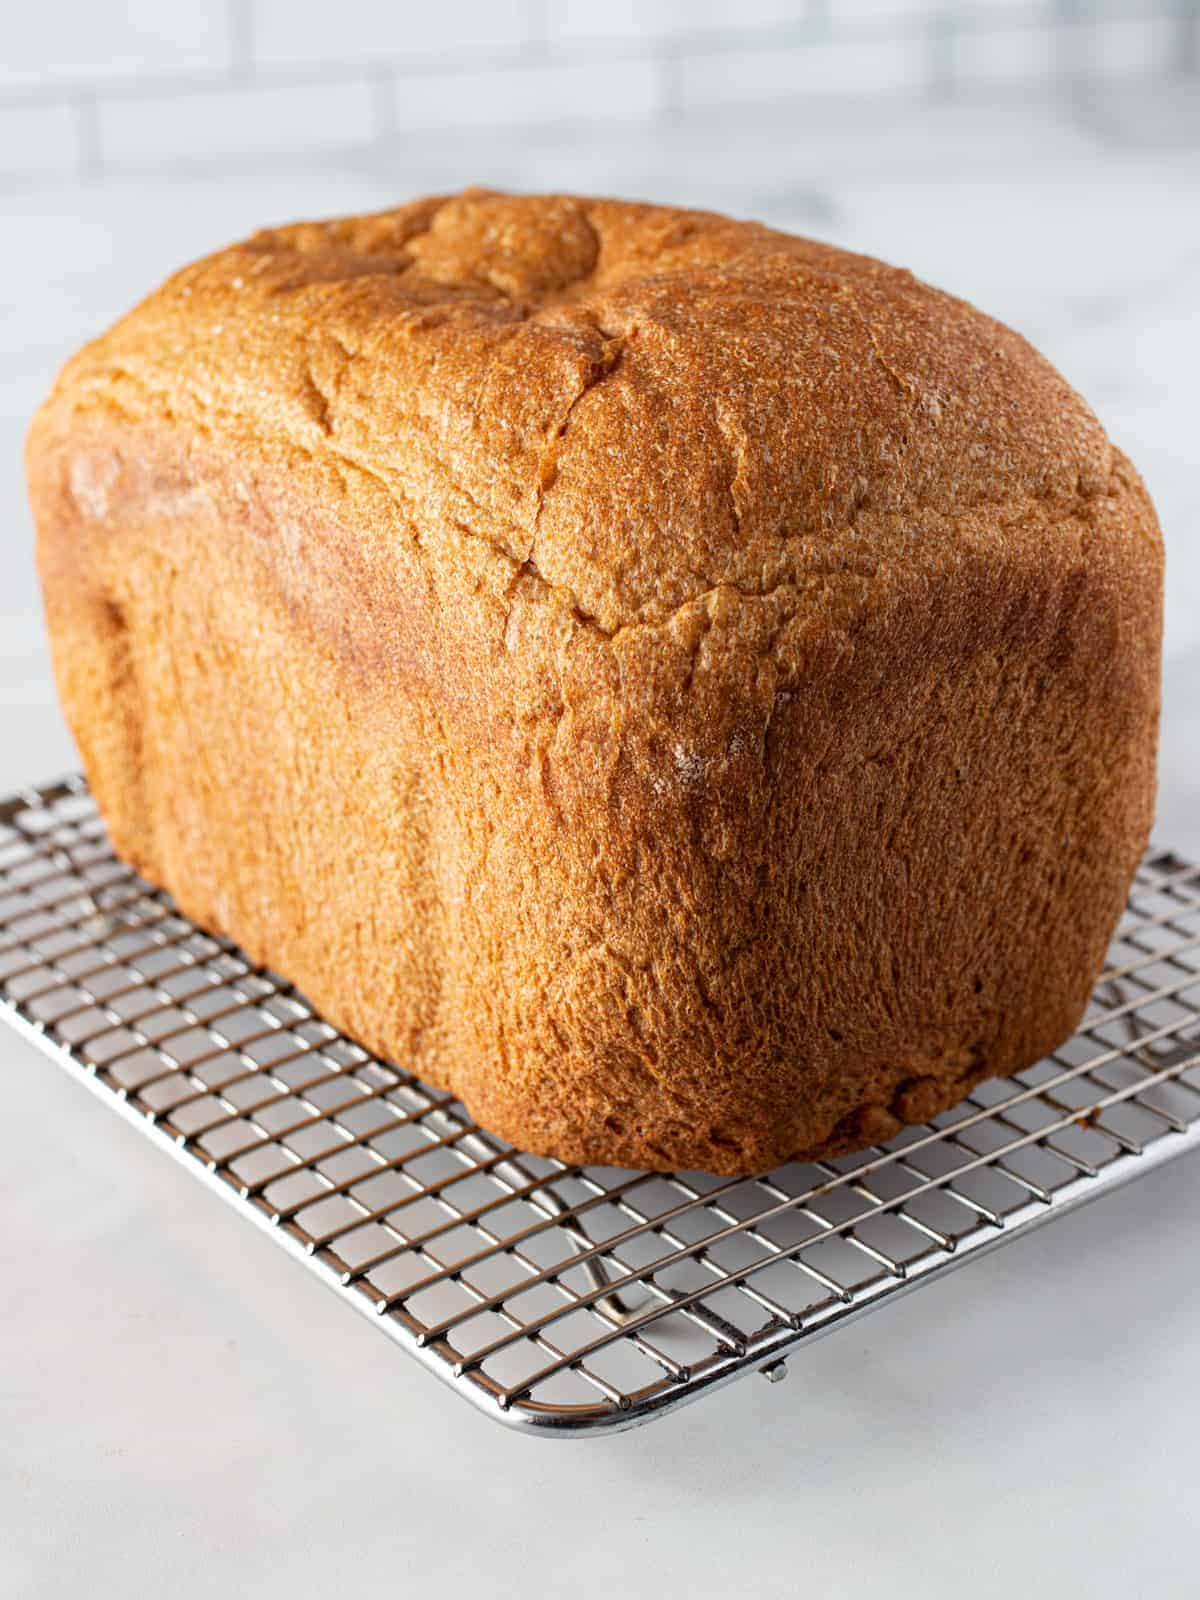 Whole wheat loaf cooling on a wire rack.